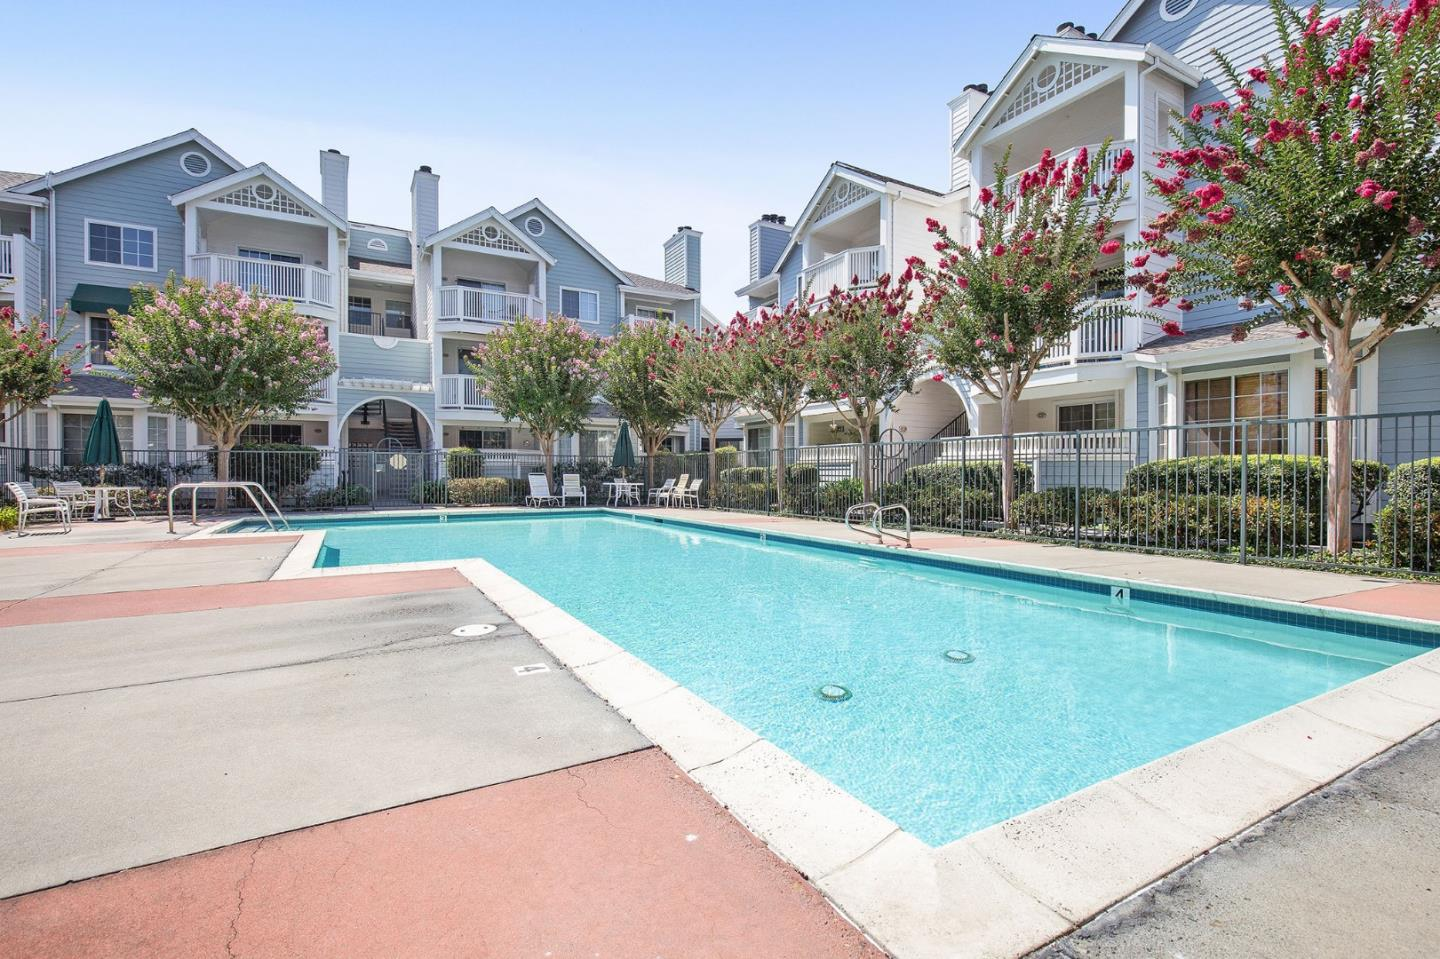 614 Arcadia Terrace Unit 107 Sunnyvale, CA 94085 - MLS #: ML81722260